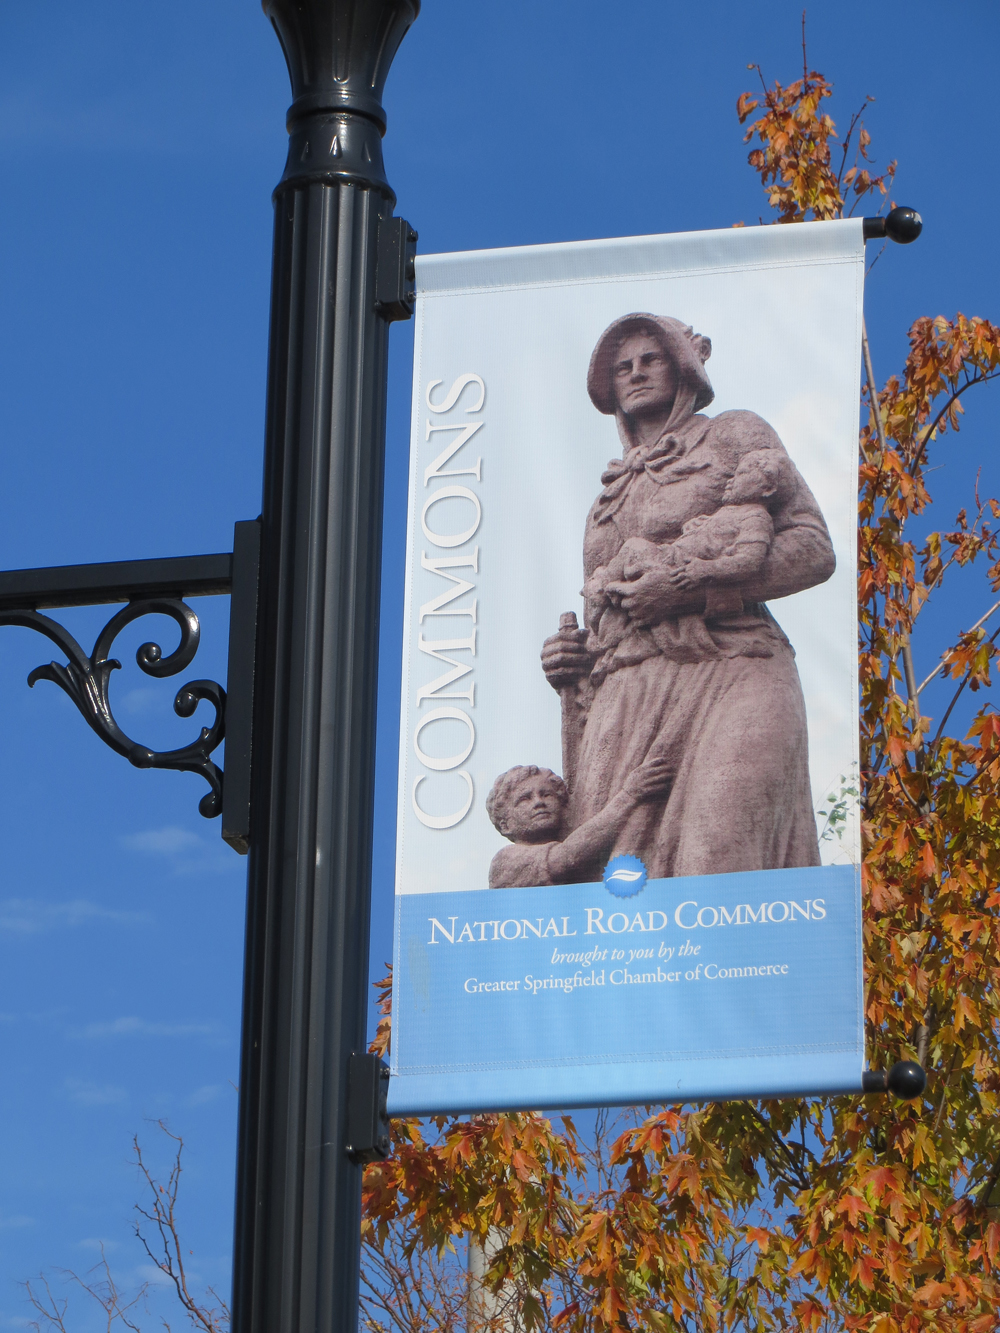 Madonna of the Trail featured on National Road Commons banner